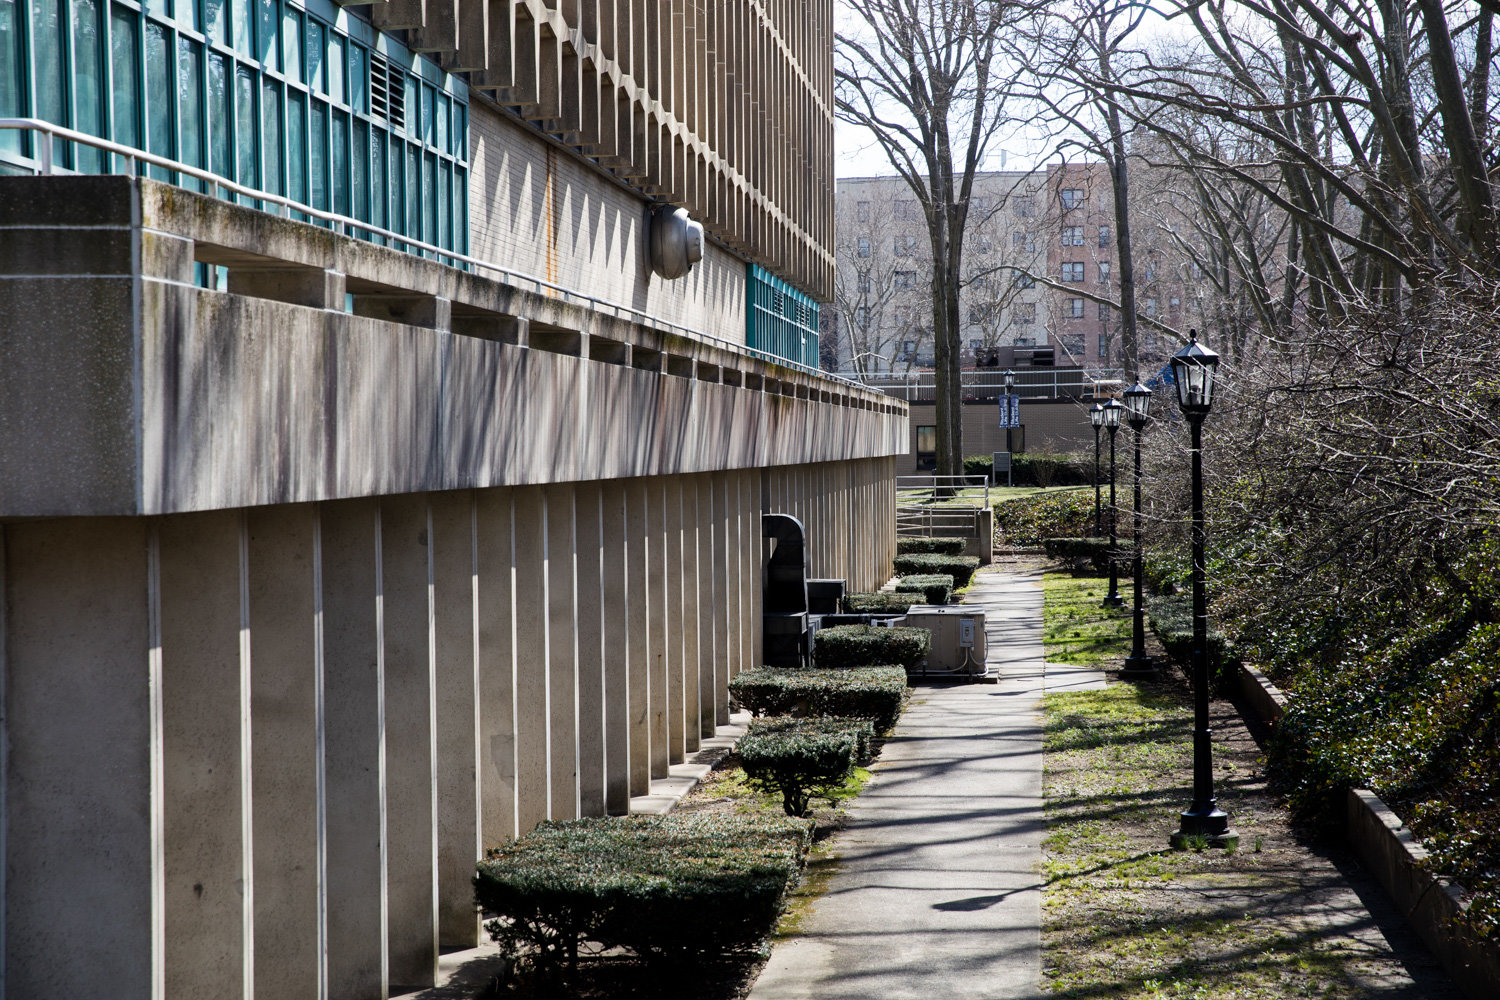 All's quiet on the Lehman College front after the campus was closed, like all CUNY campuses, March 11 in response to the coronavirus outbreak.